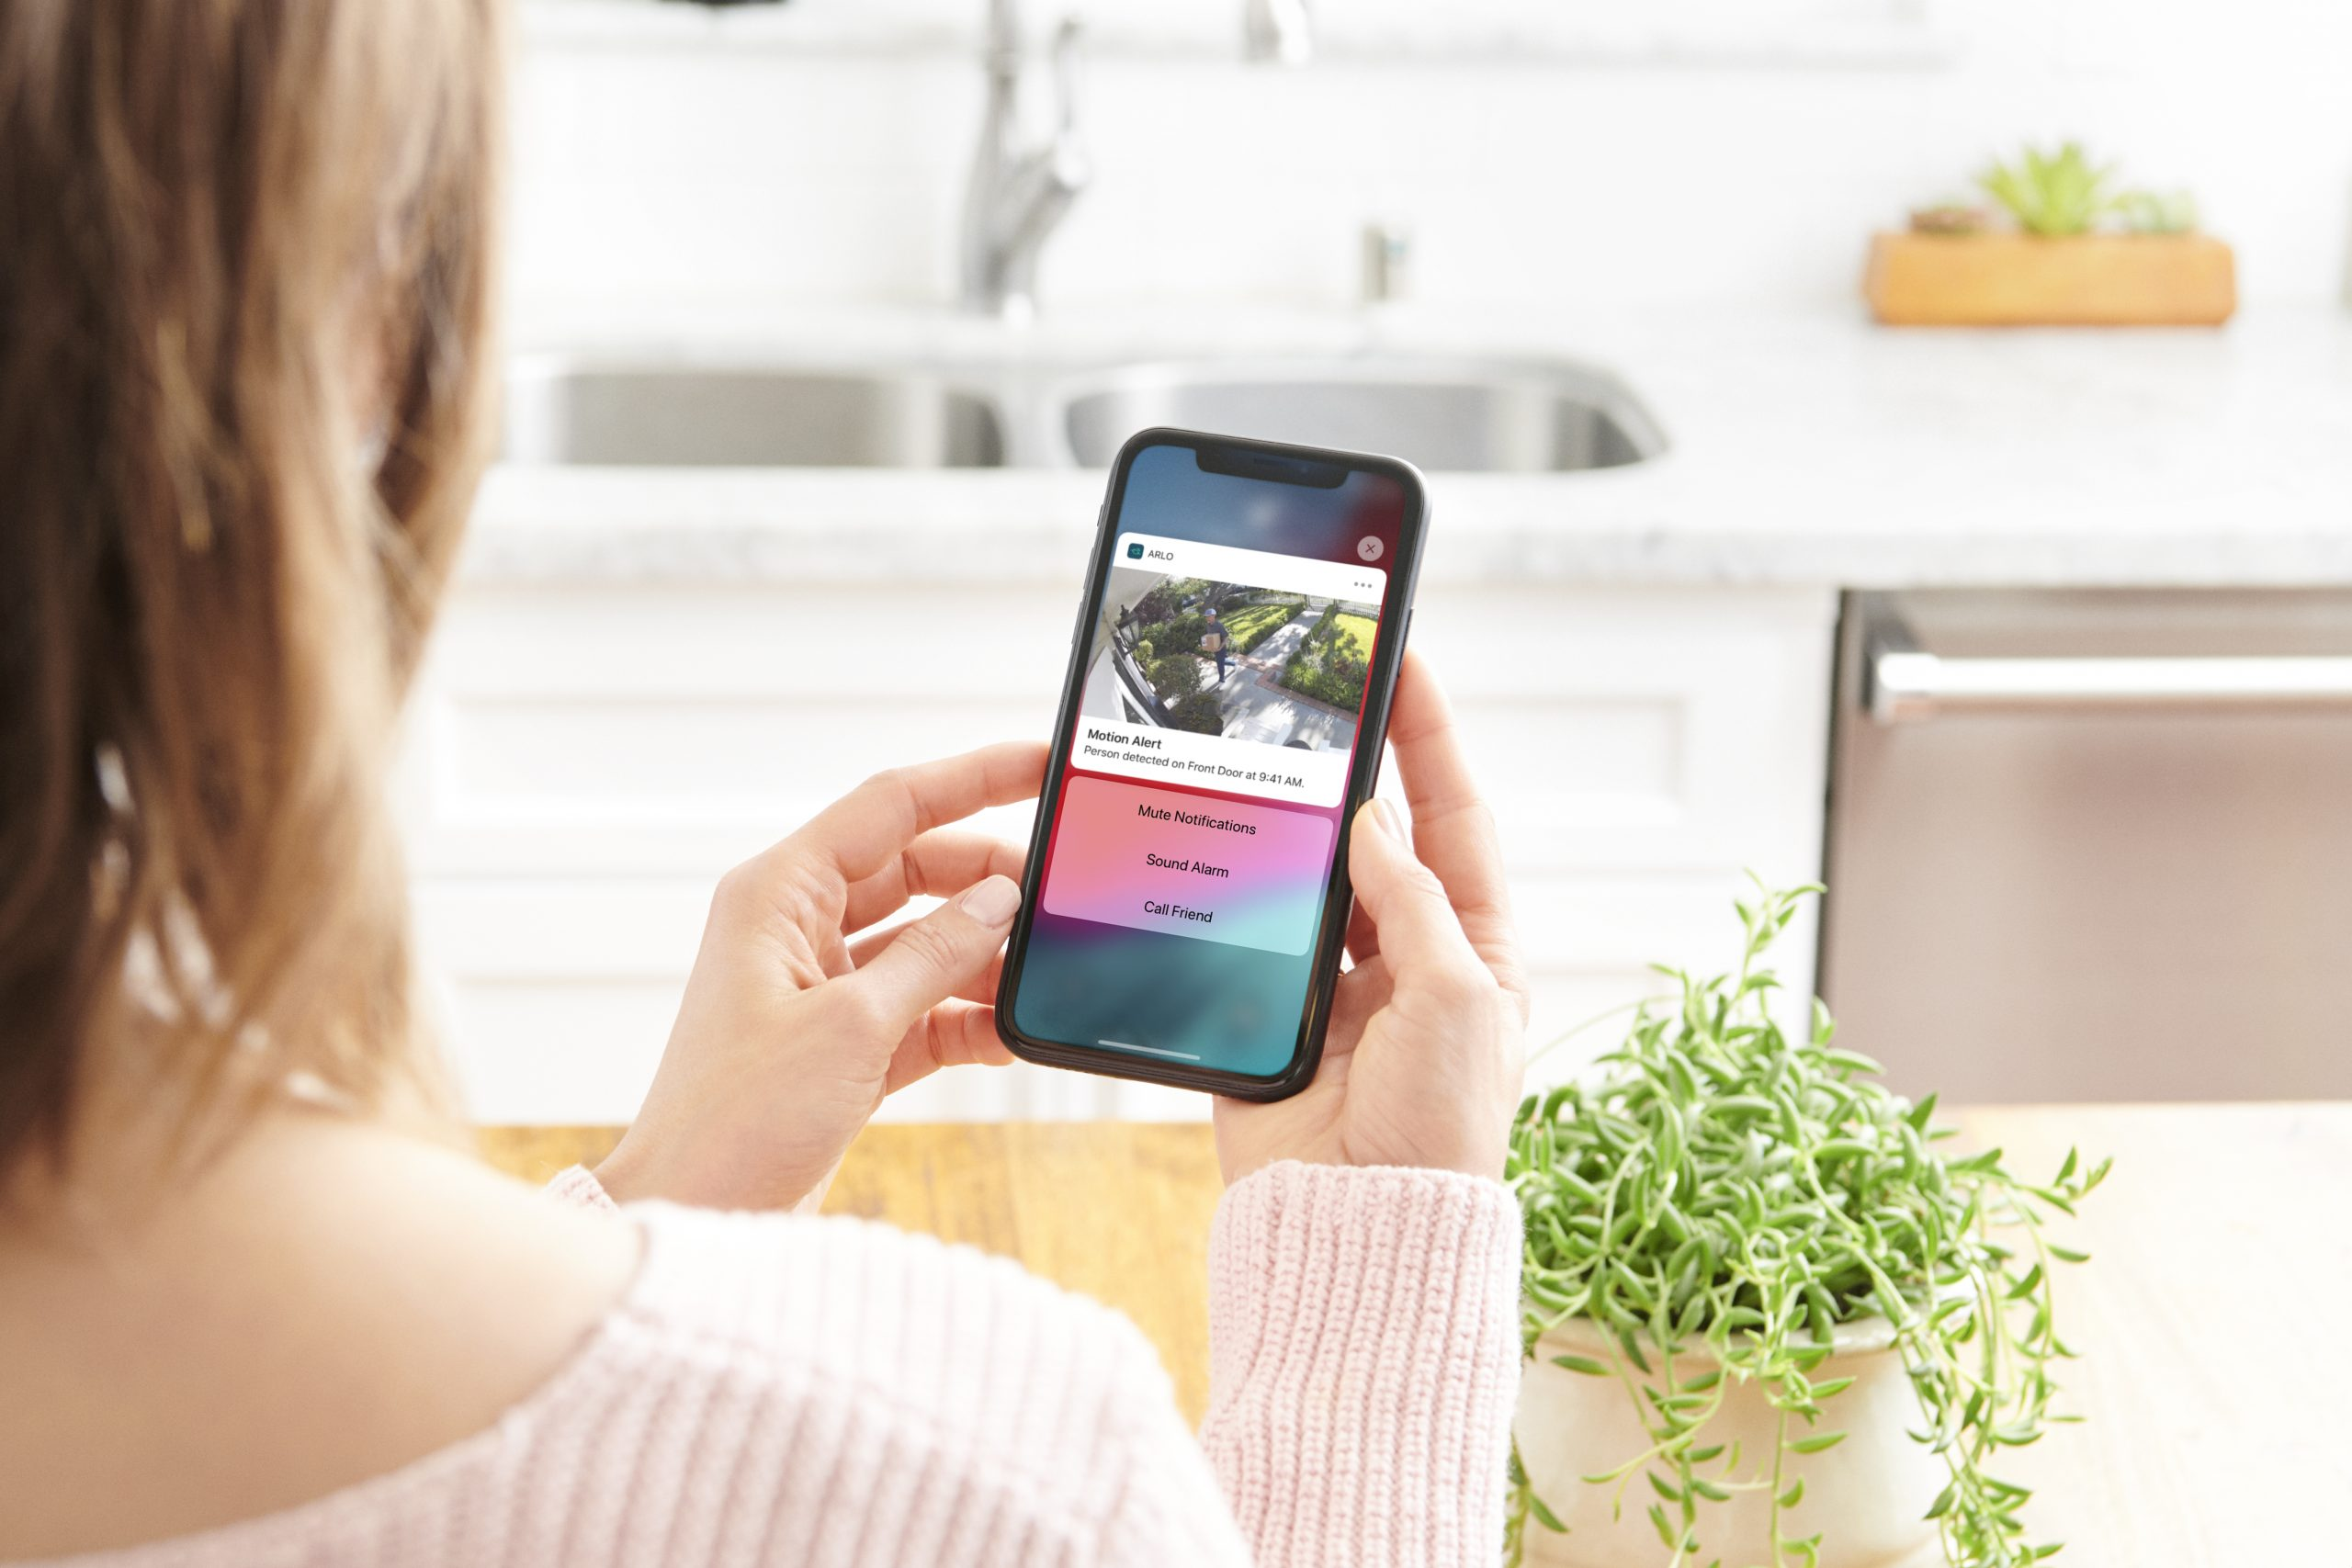 Essential  Spotlight Lifestyle UX Motion Alerts Arlo security camera app scaled Arlo Launch Essential Spotlight Security Camera, With HD Video